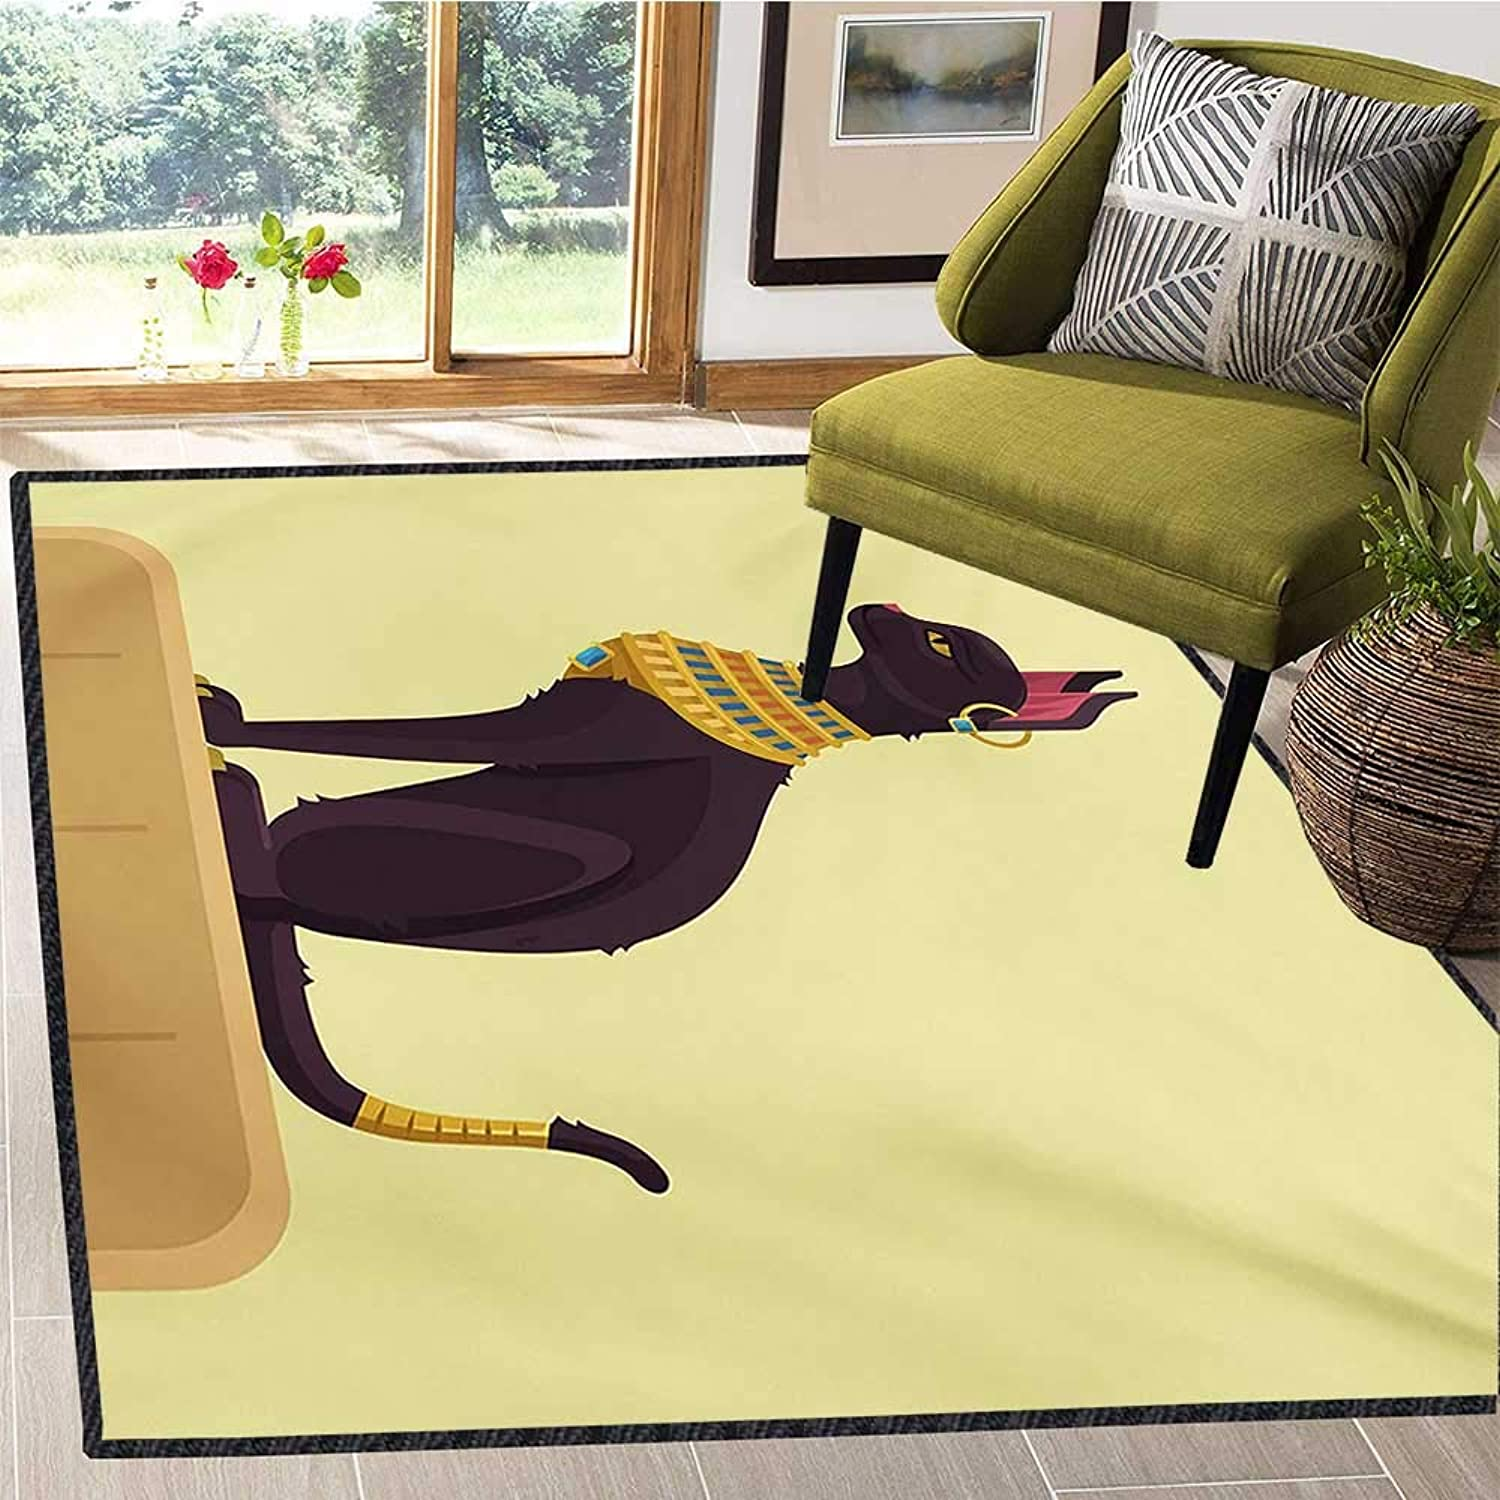 Egypt, Door Mats Area Rug, Antique Ancient Times Mystical Cartoon Style Cat with Earring Image, Door Mats for Inside 5x6 Ft Pale Yellow Mustard Plum